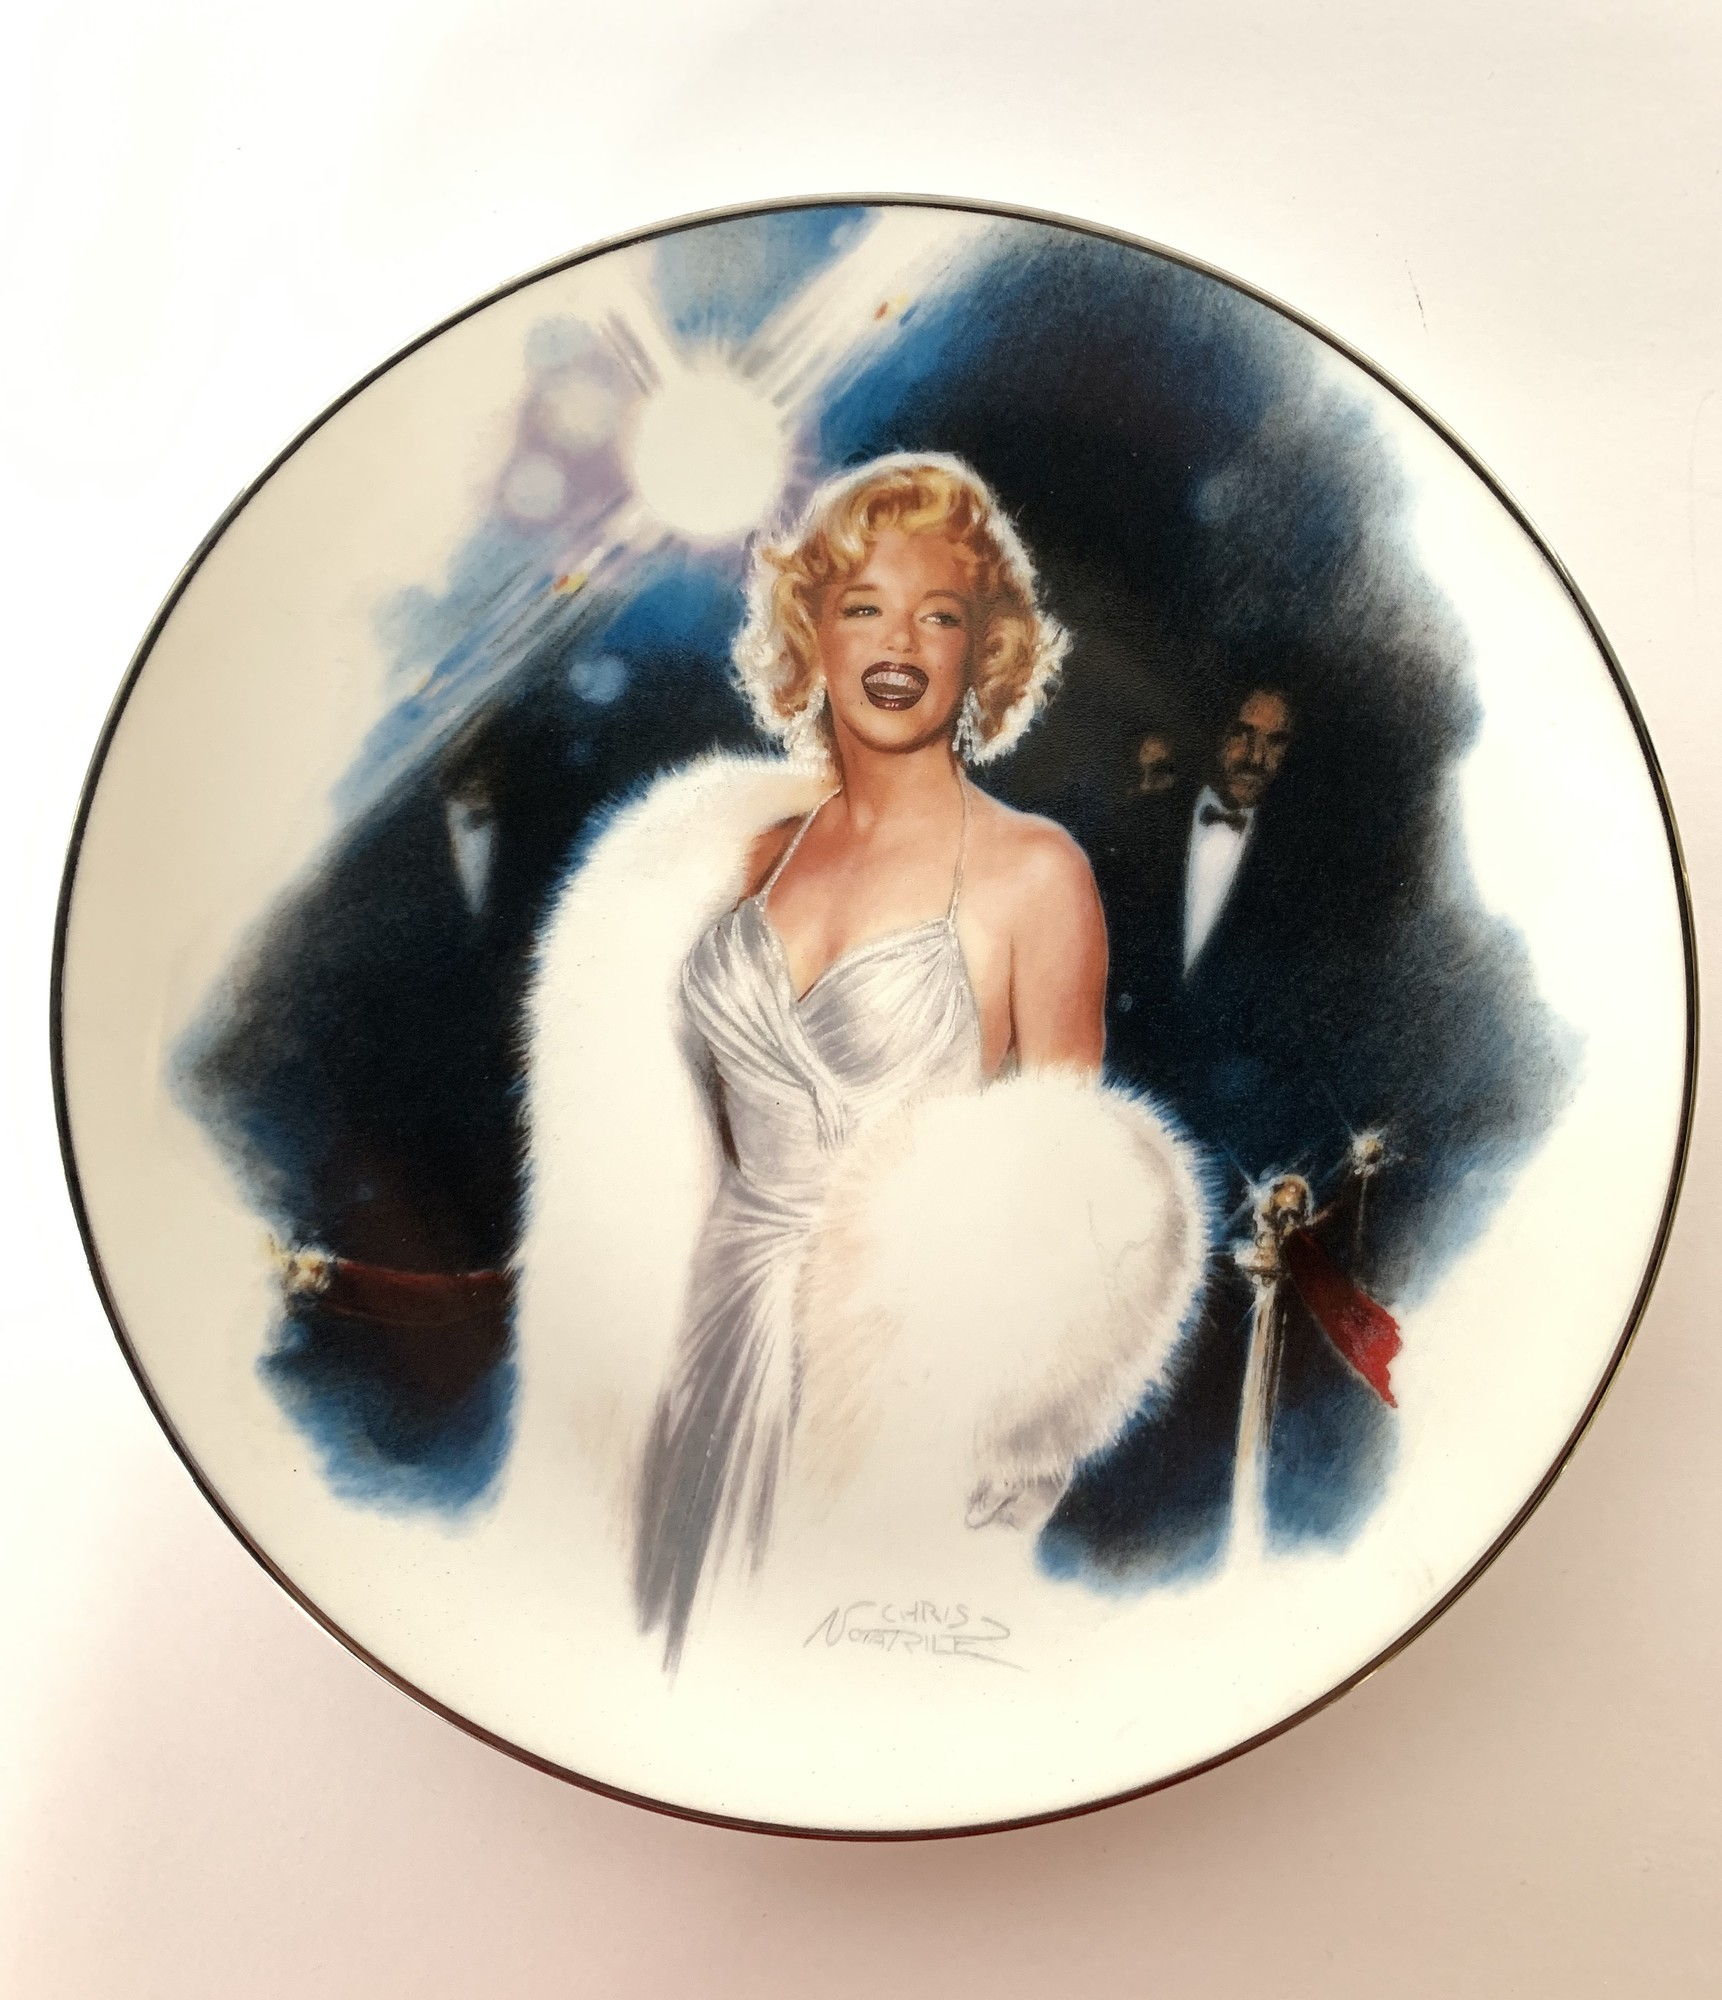 The Magic of Marilyn collection.